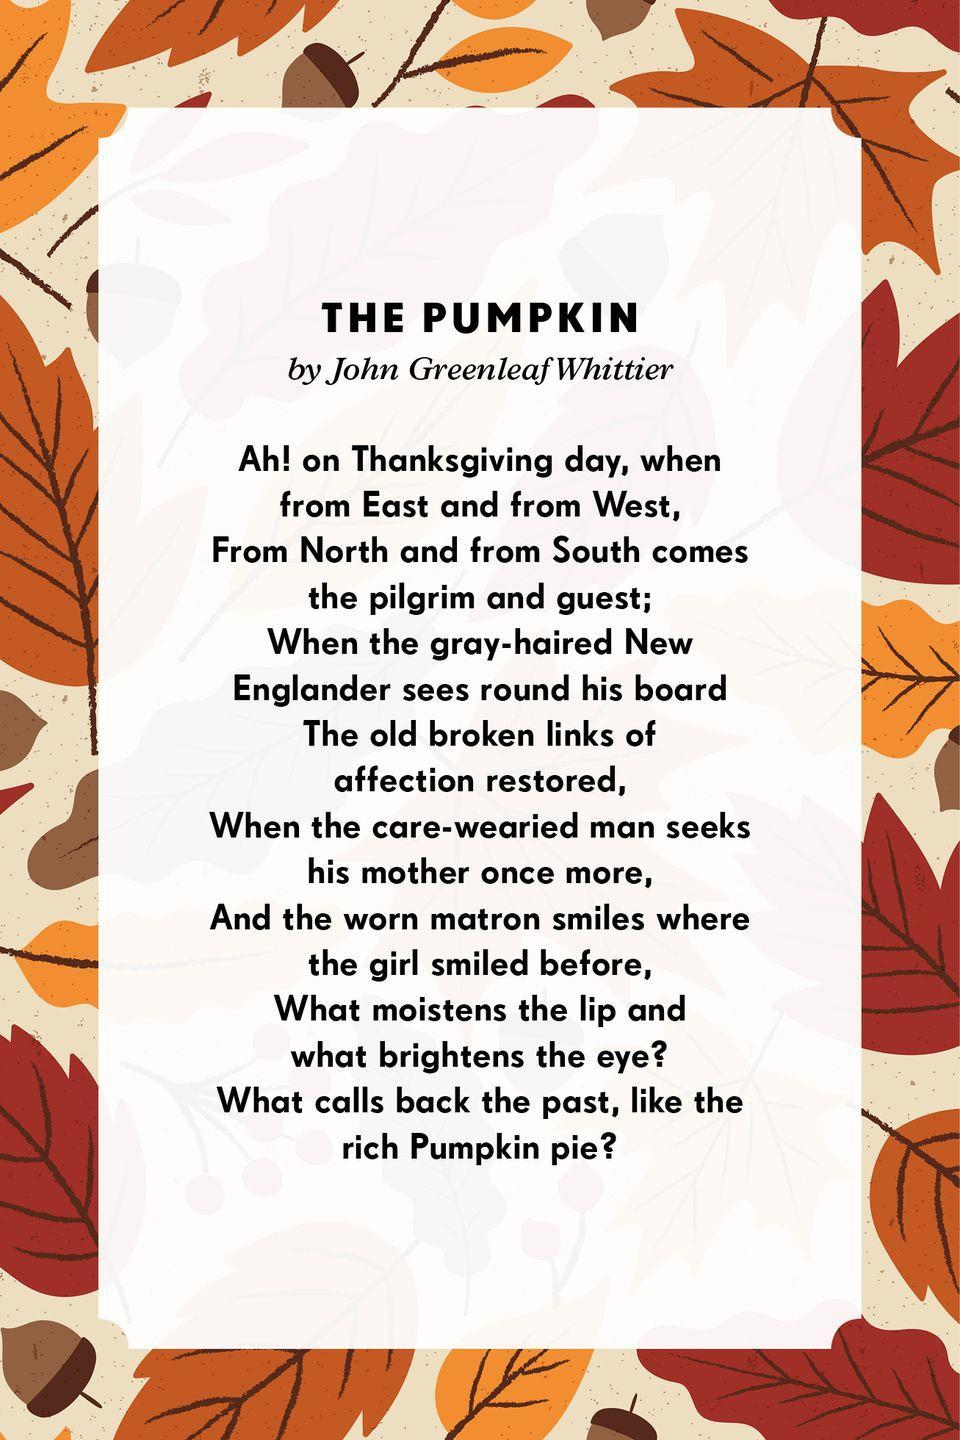 <p><strong>The Pumpkin</strong></p><p>Ah! on Thanksgiving day, when from East and from West,<br>From North and from South comes the pilgrim and guest;<br>When the gray-haired New Englander sees round his board<br>The old broken links of affection restored,<br>When the care-wearied man seeks his mother once more,<br>And the worn matron smiles where the girl smiled before,<br>What moistens the lip and what brightens the eye?<br>What calls back the past, like the rich Pumpkin pie?</p>